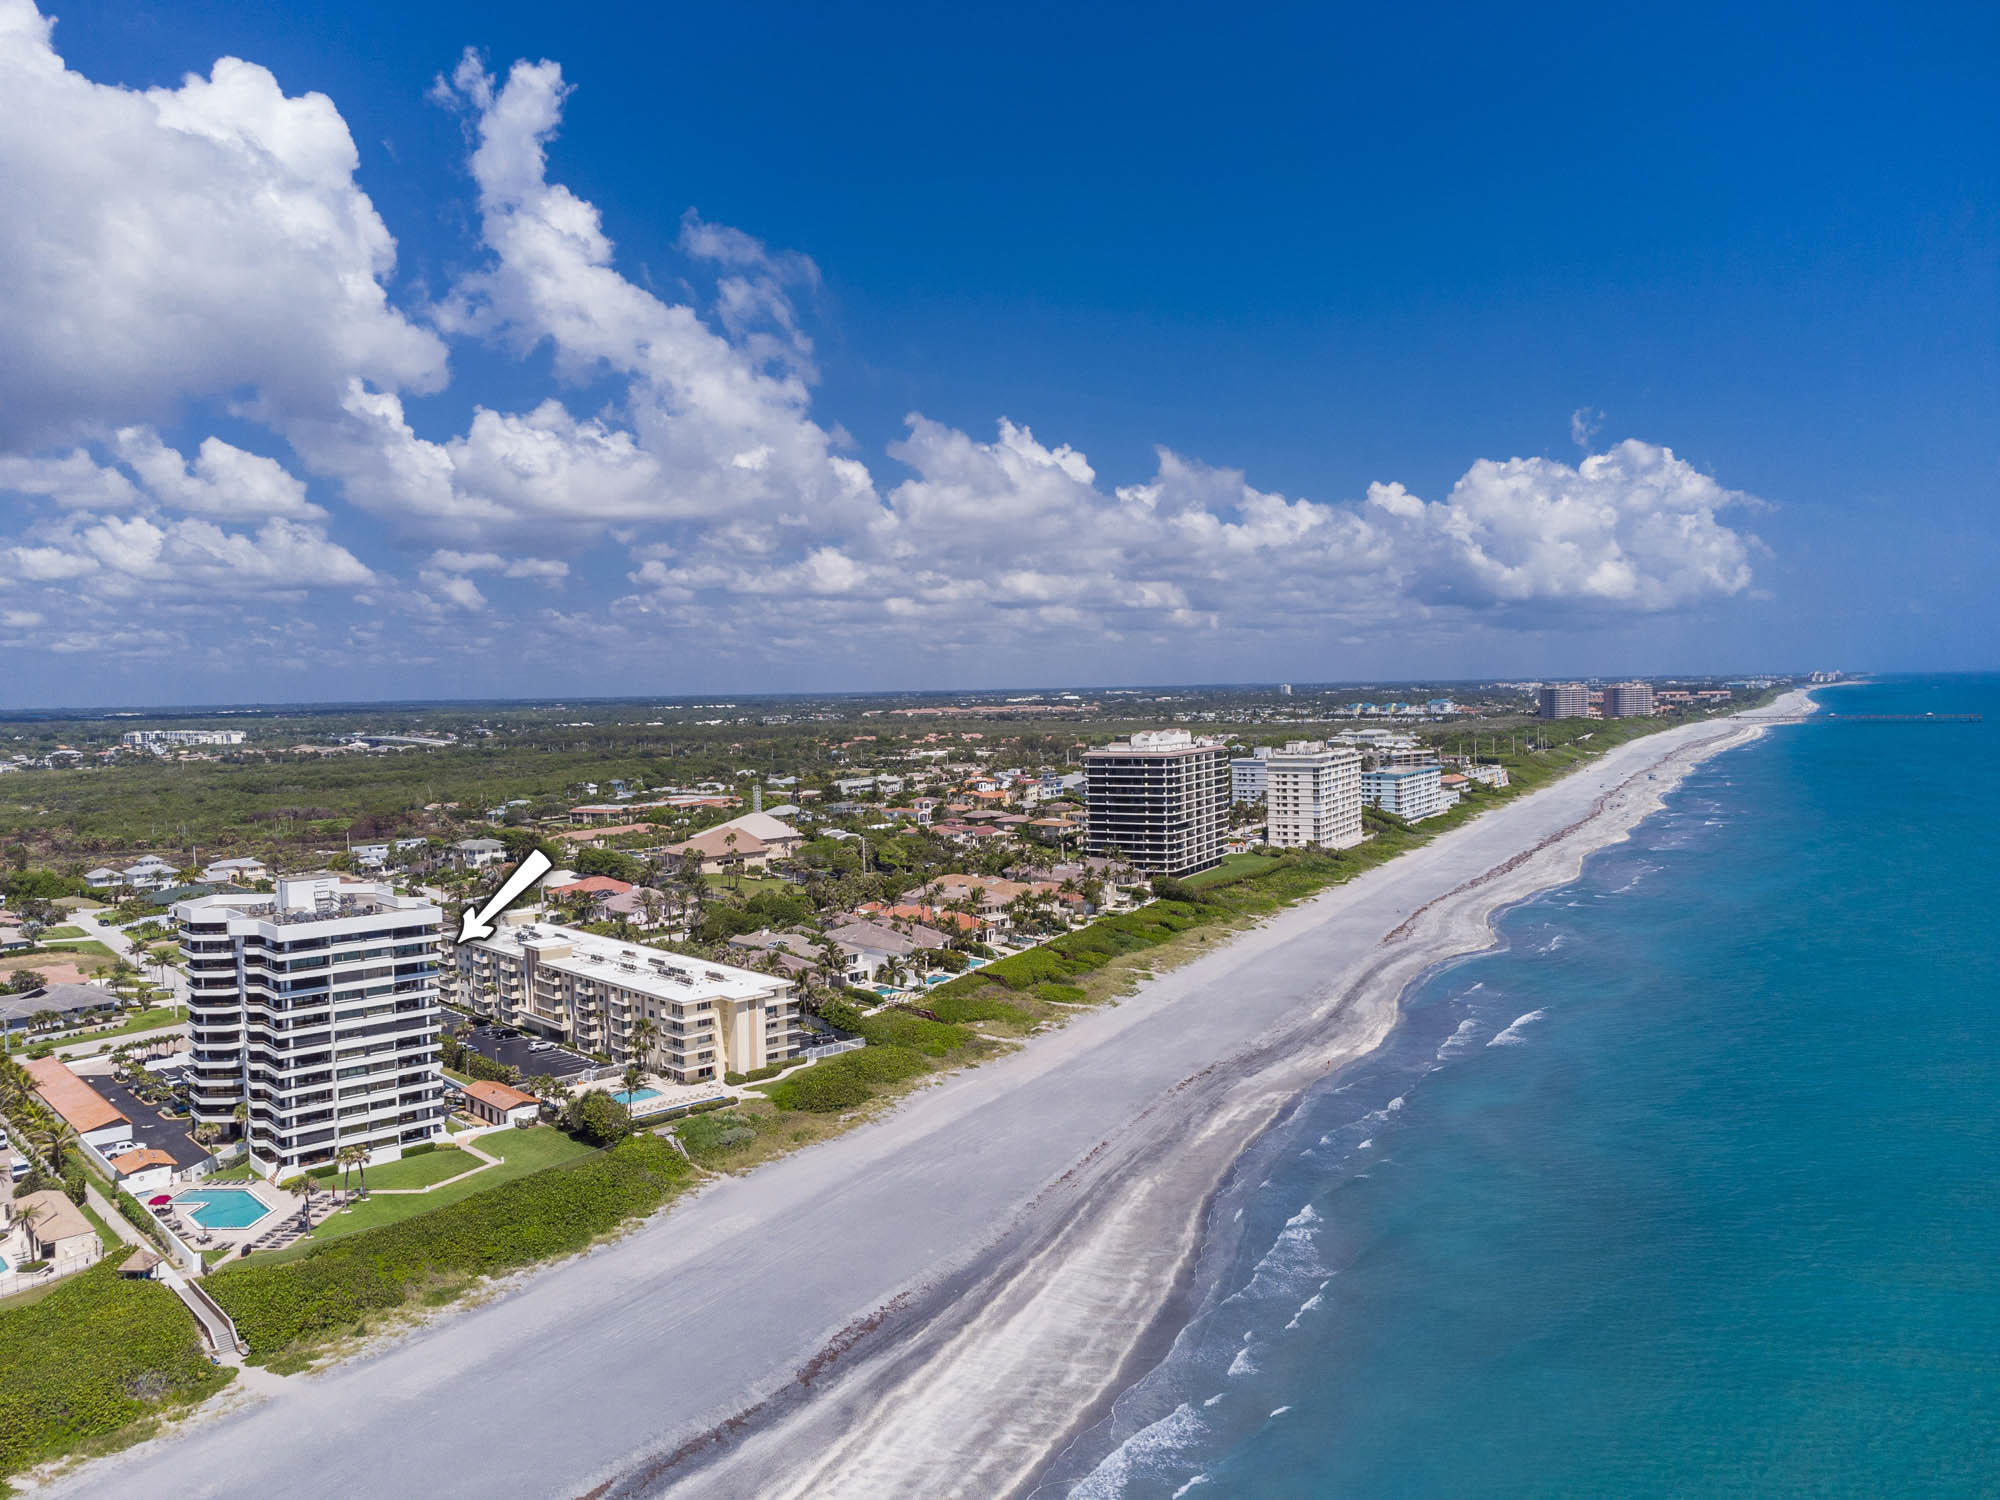 Surround yourself in Juno Beach's beautiful teal waters! Up on the 10th floor of this ocean front building, the shades of blue welcome you the moment you walk in the door. Enjoy your sunny ocean views any time of day as you stay shaded on the northeastern directed wrap-around balcony. The kitchen is set for entertaining with an open floor plan, beverage fridge, and dining space adjacent to the balcony- open all your sliding glass doors and enjoy indoor/outdoor living. A true master suite with large walk-in closet and en-suite bathroom gives you privacy from your guests with coastal wood finish on the ceiling. The unit is fully protected with accordion hurricane shutters and this condo can be sold furnished or unfurnished. Horizon condos is a beautifully maintained building with his & her saunas, fitness room, pool and beach access via the private boardwalk. One pet under 30 lbs per unit allowed.